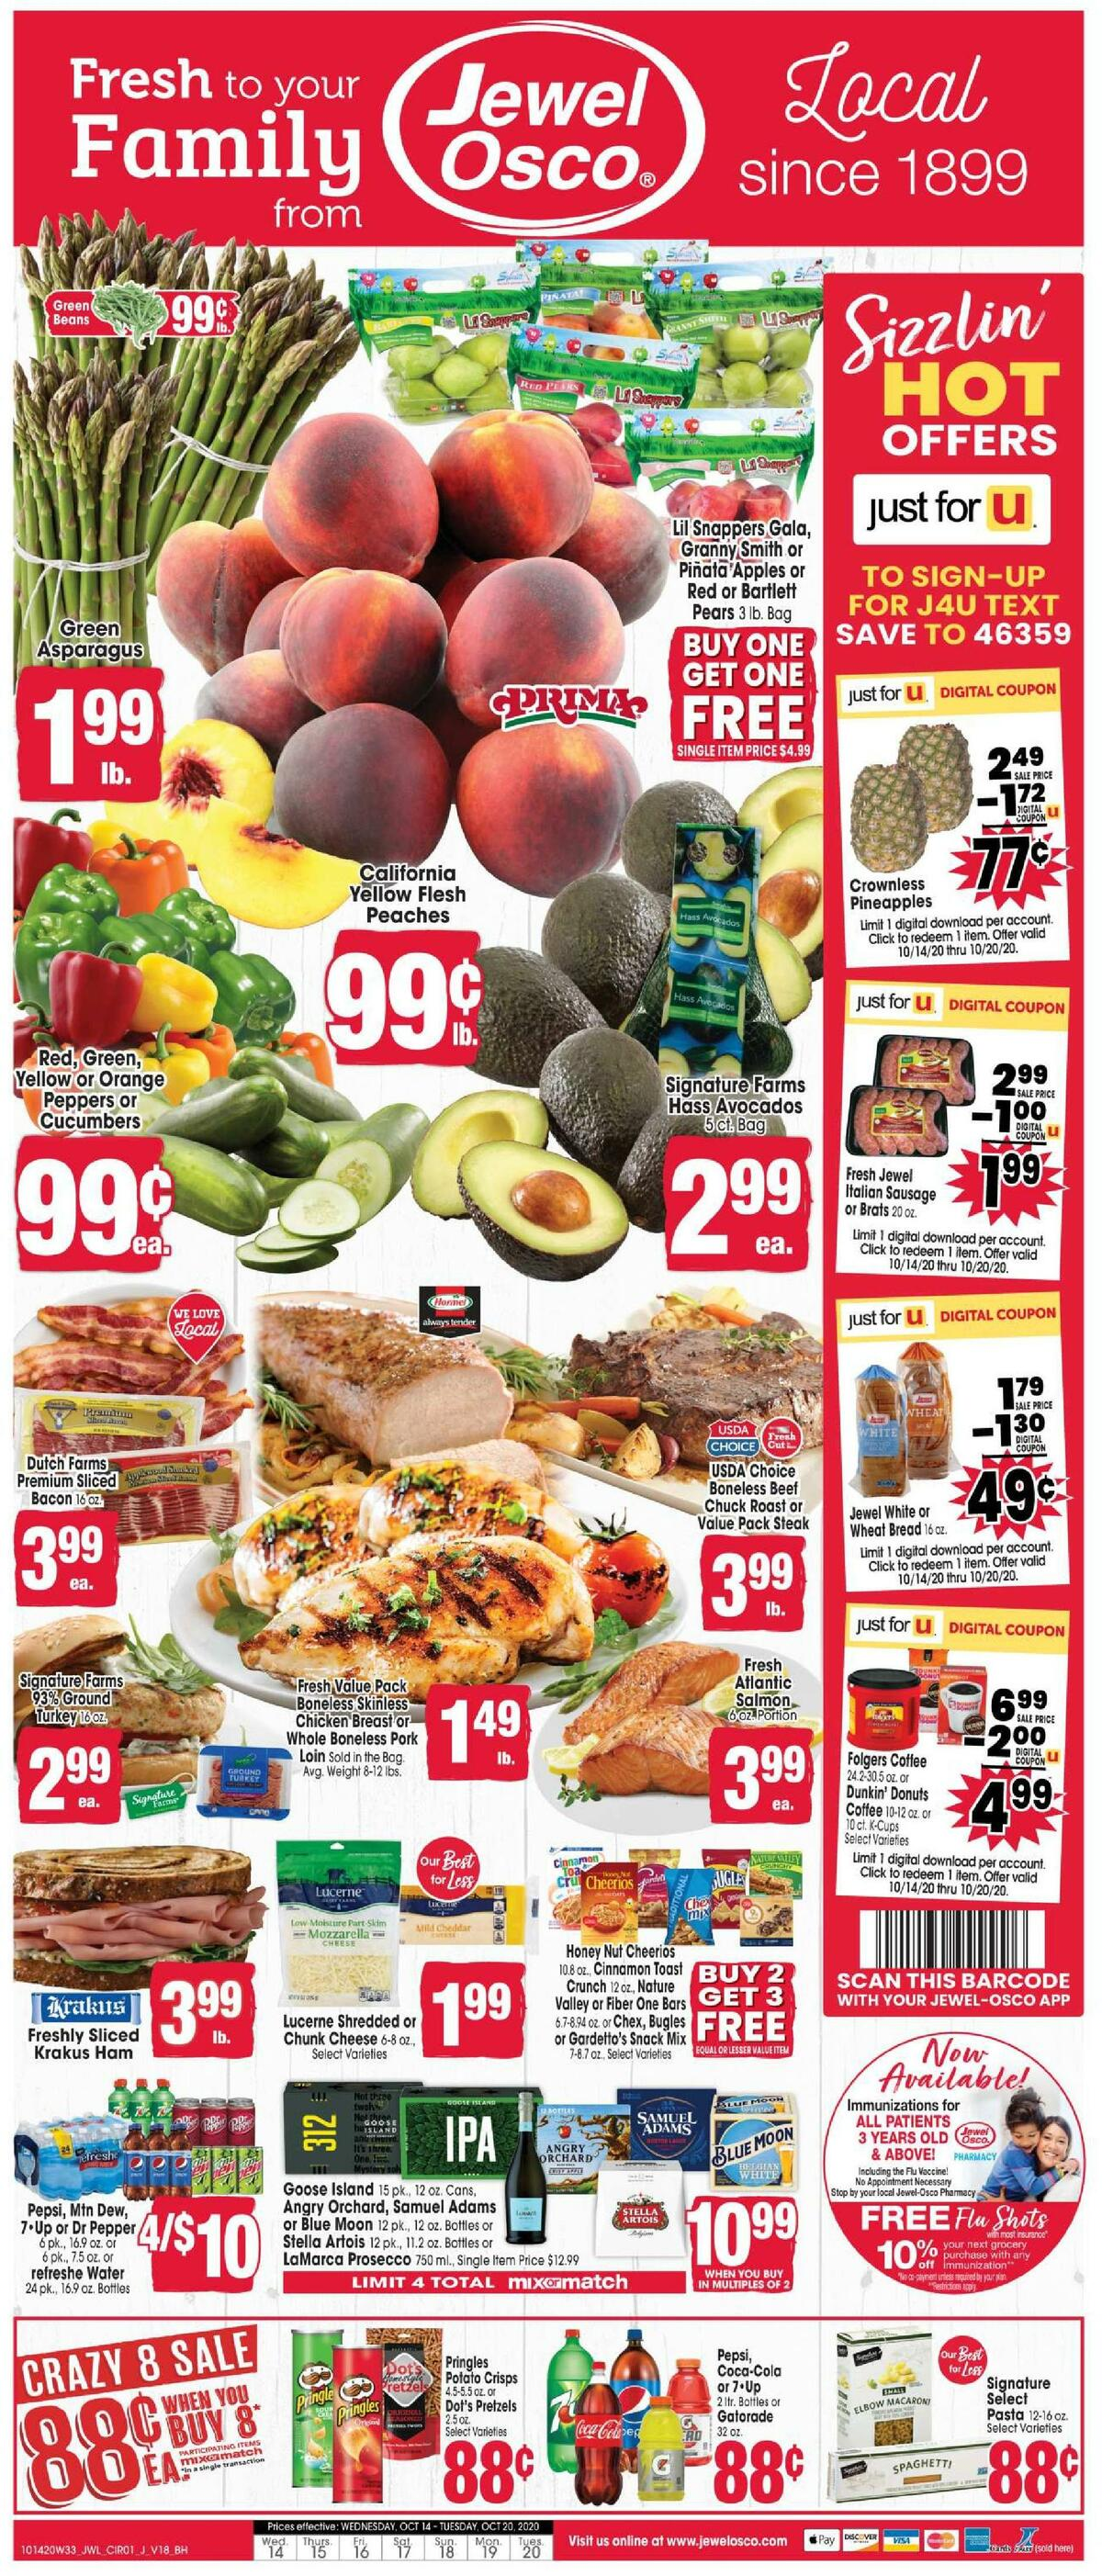 Jewel Osco Weekly Ad from October 14